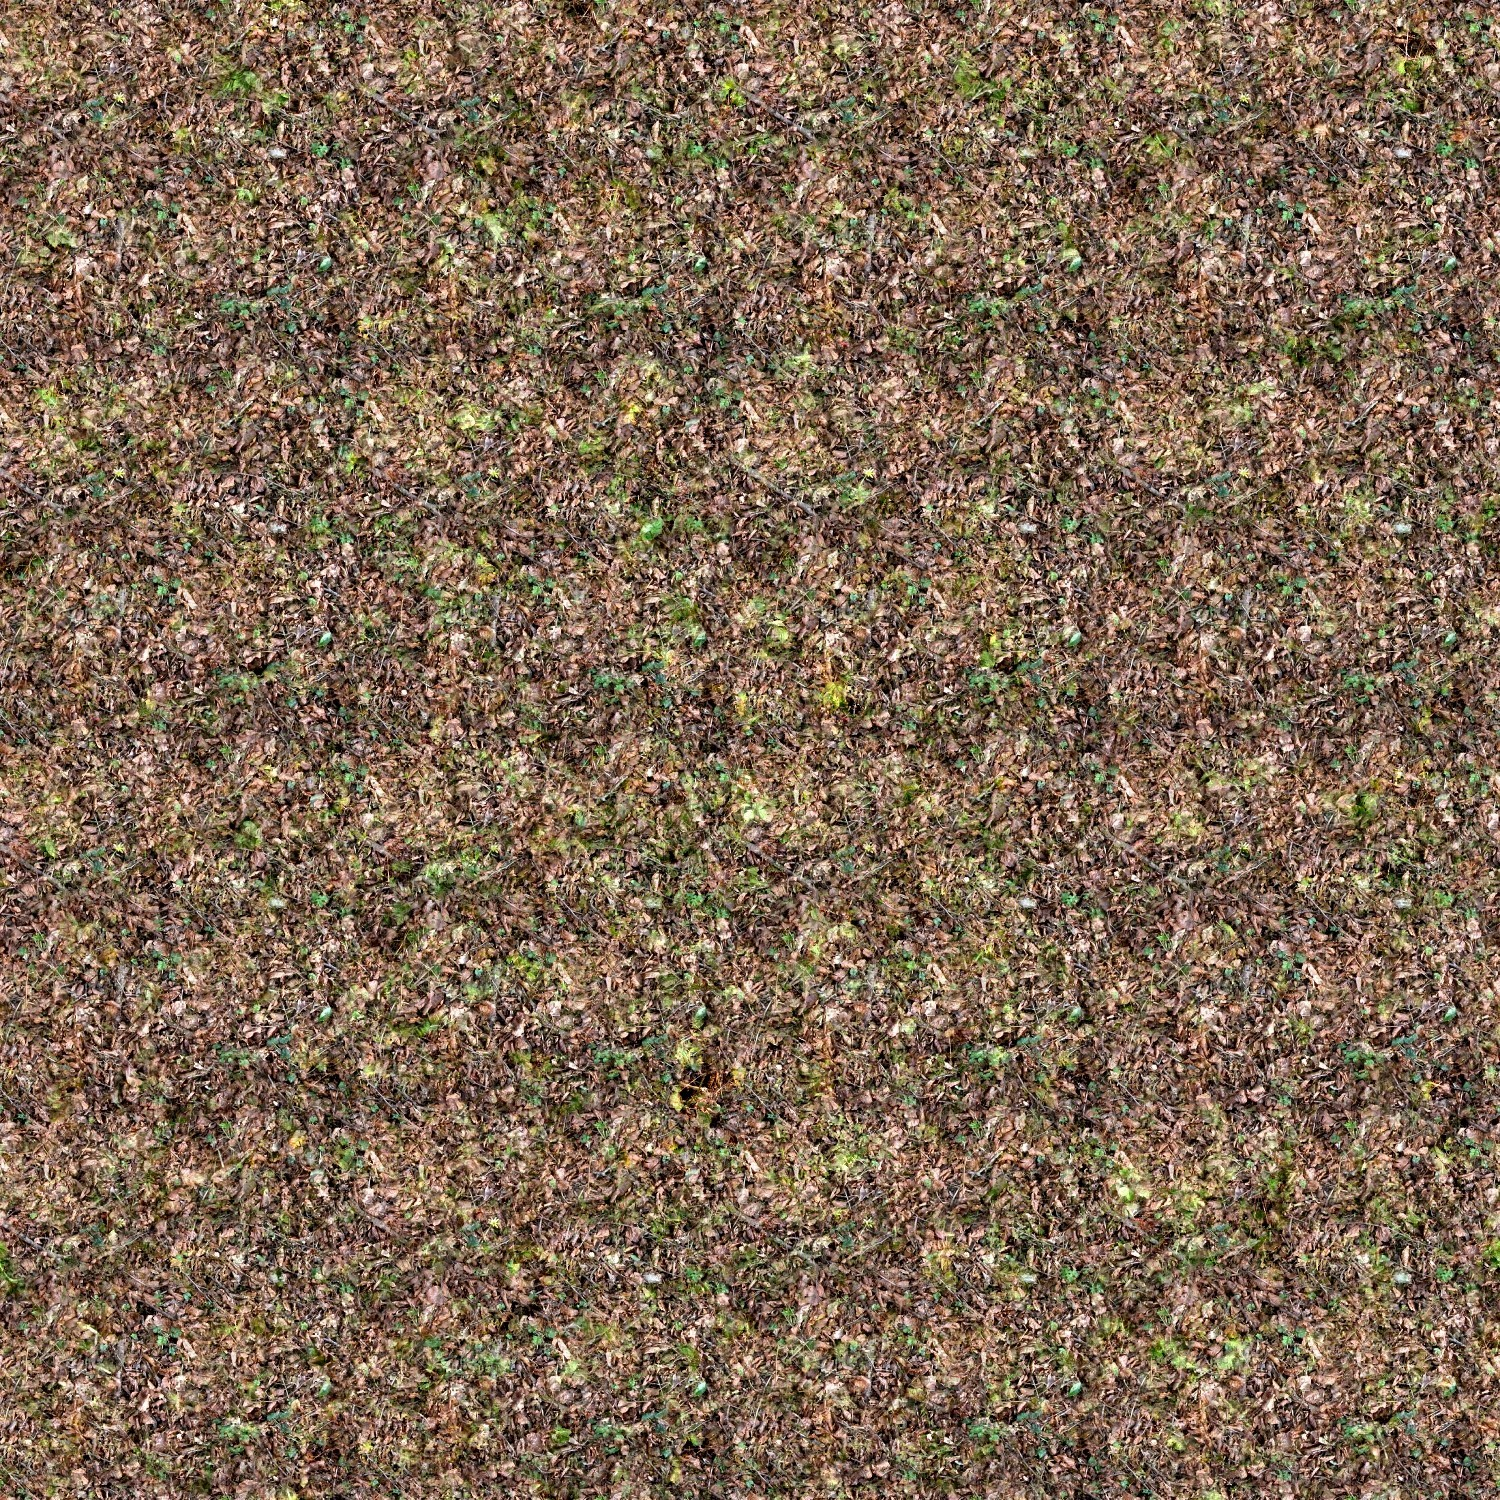 forests grass Textures stereogram HD Wallpaper